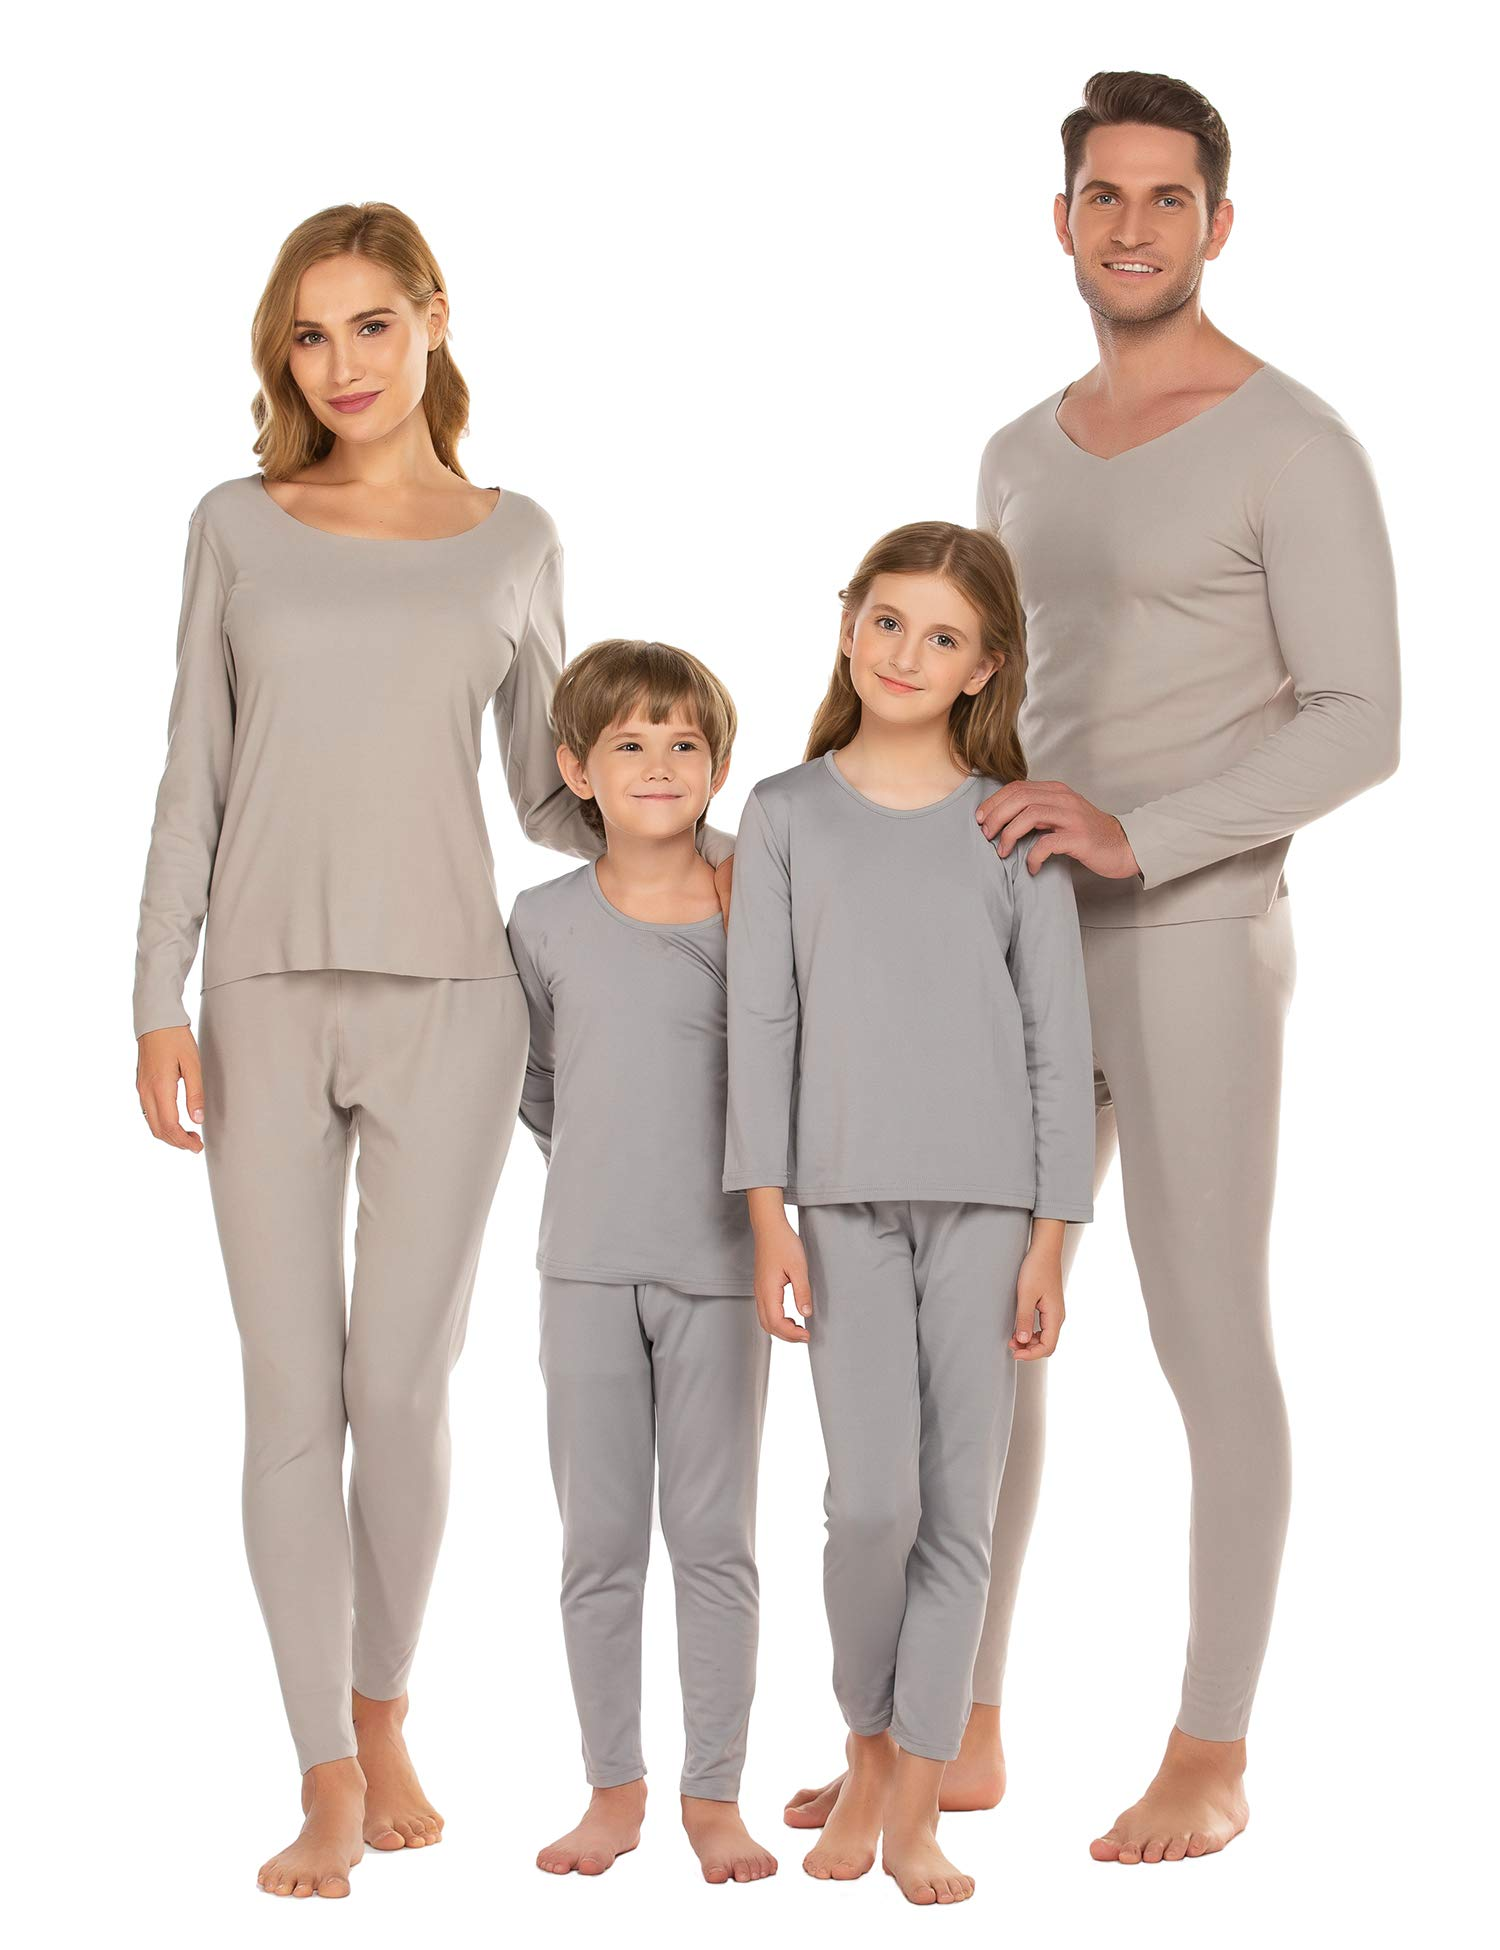 luxilooks Family Thermal Underwear Set Womens Kids Girls Winter Skiing Warm Top&Bottom Long Johns (Men/Gray,XL) by luxilooks